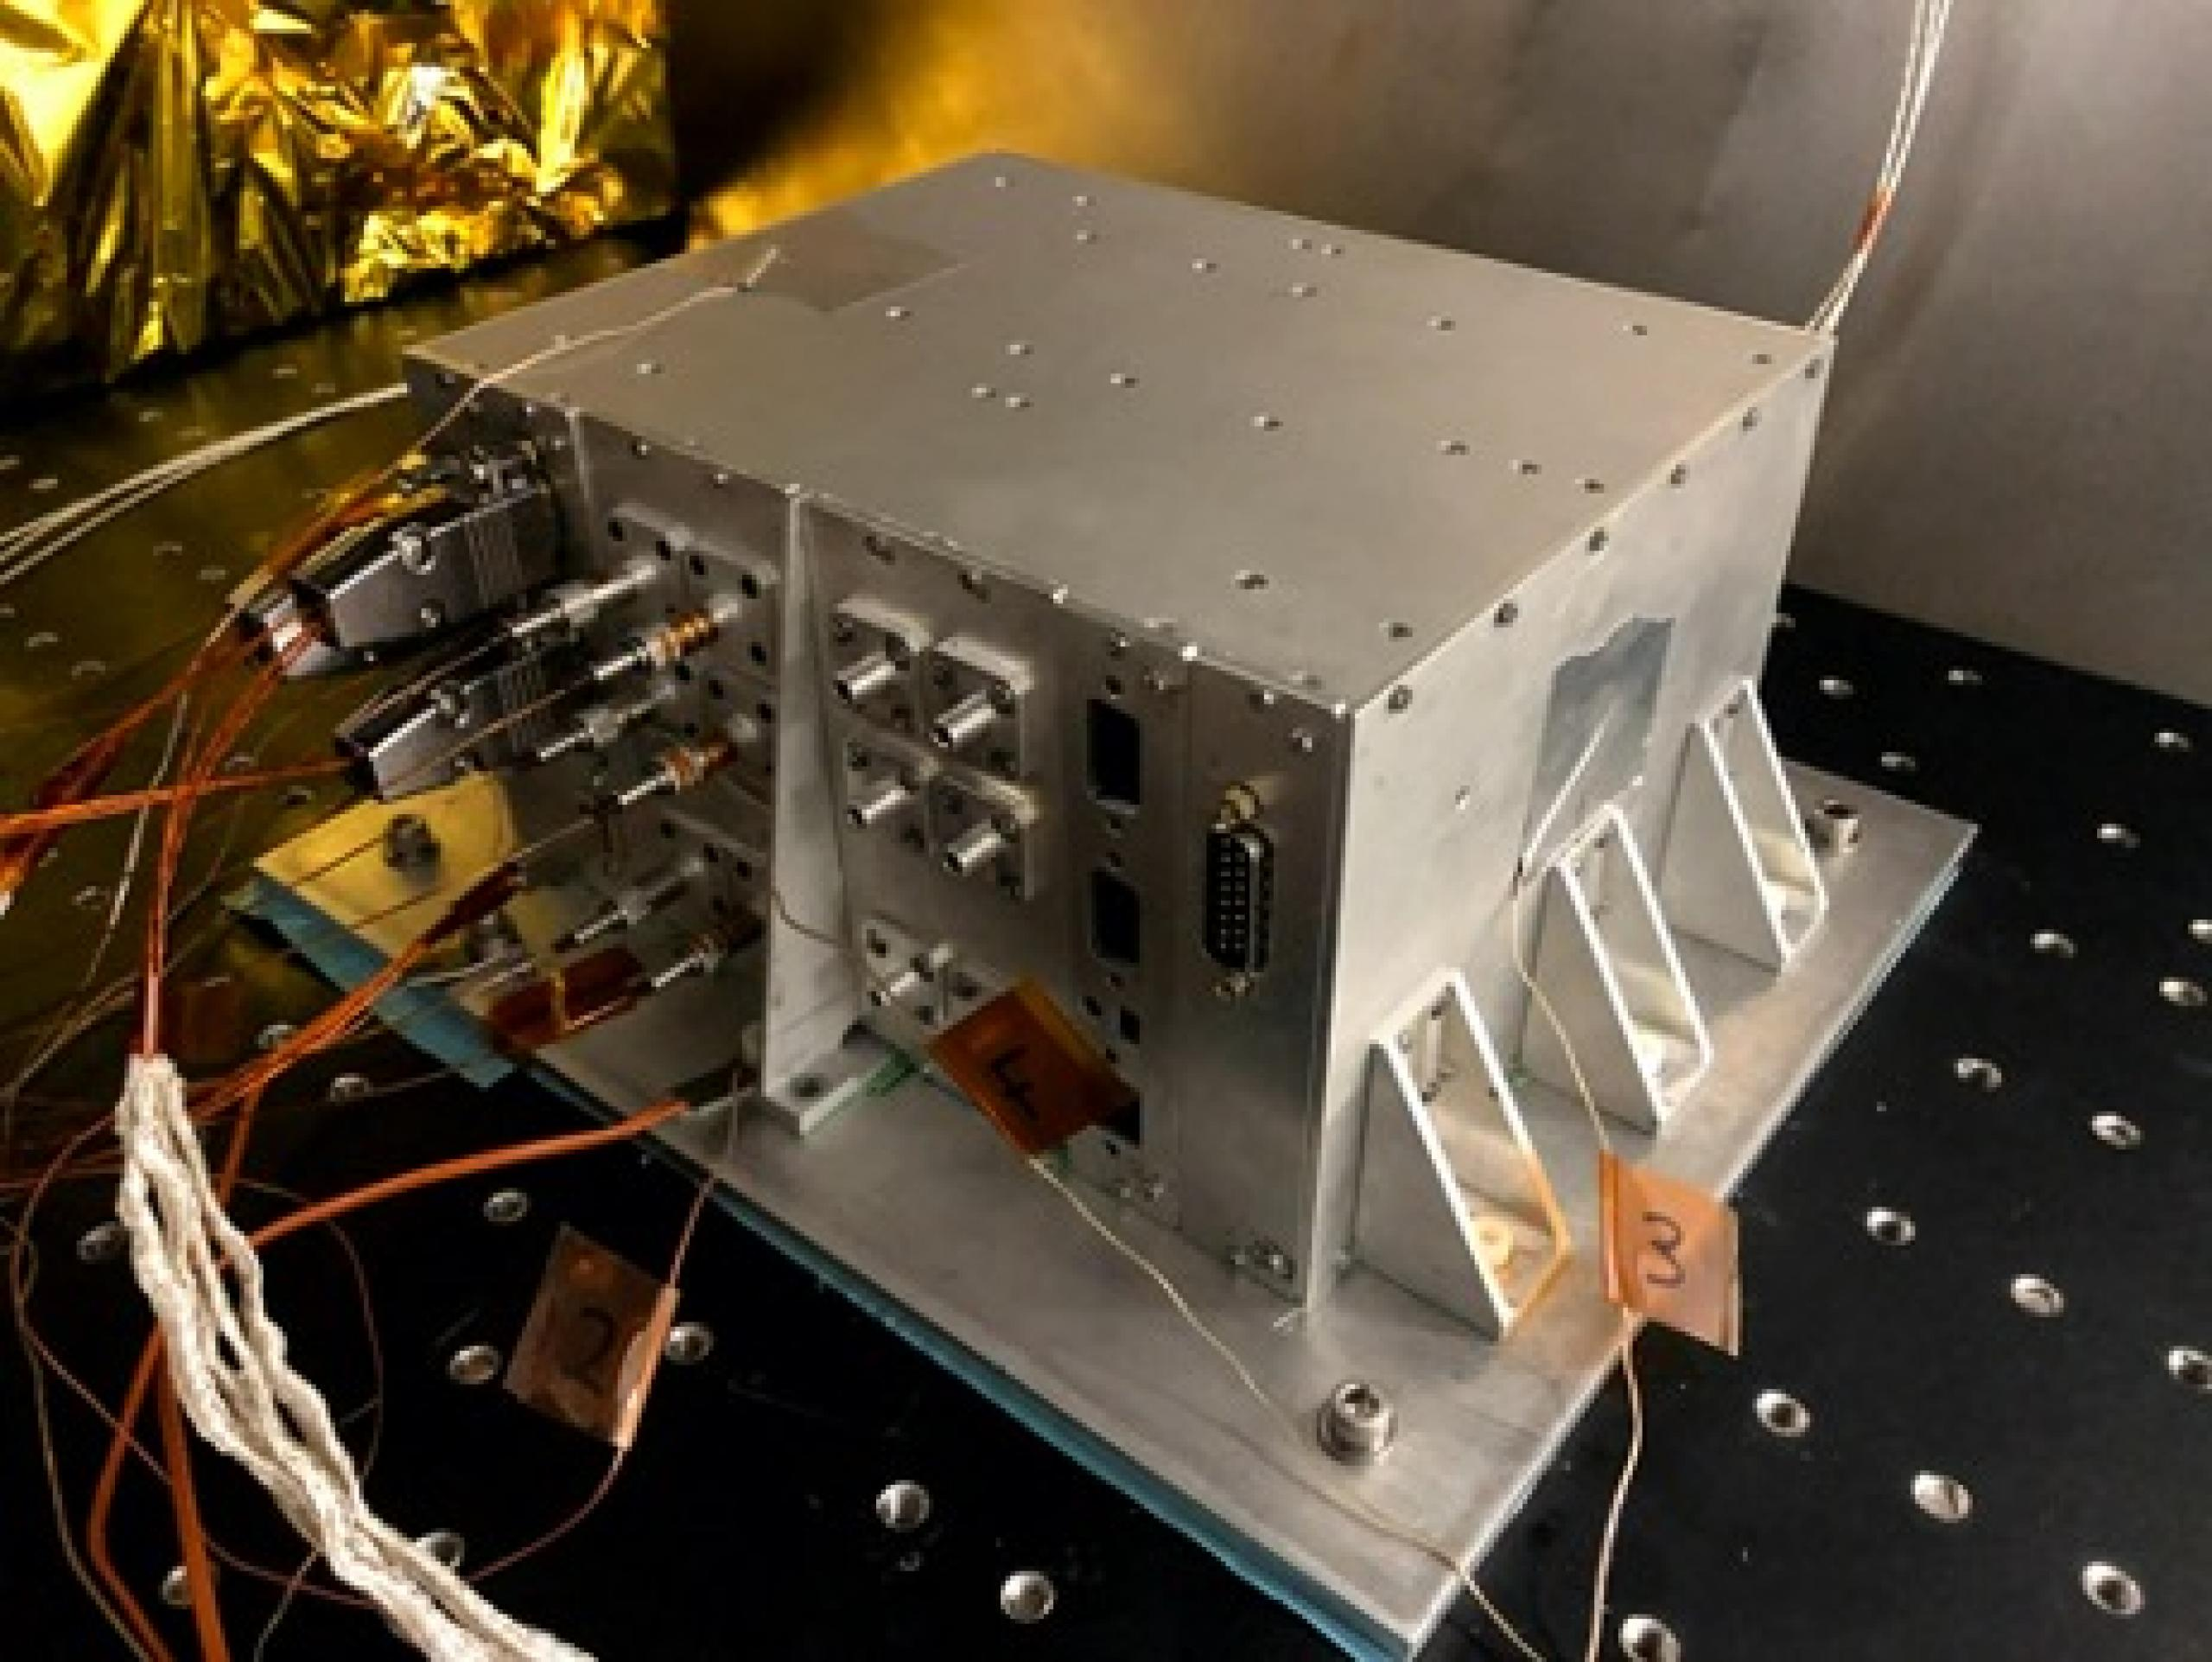 Photograph of silver colored metal hardware box with several colored wires plugged into it